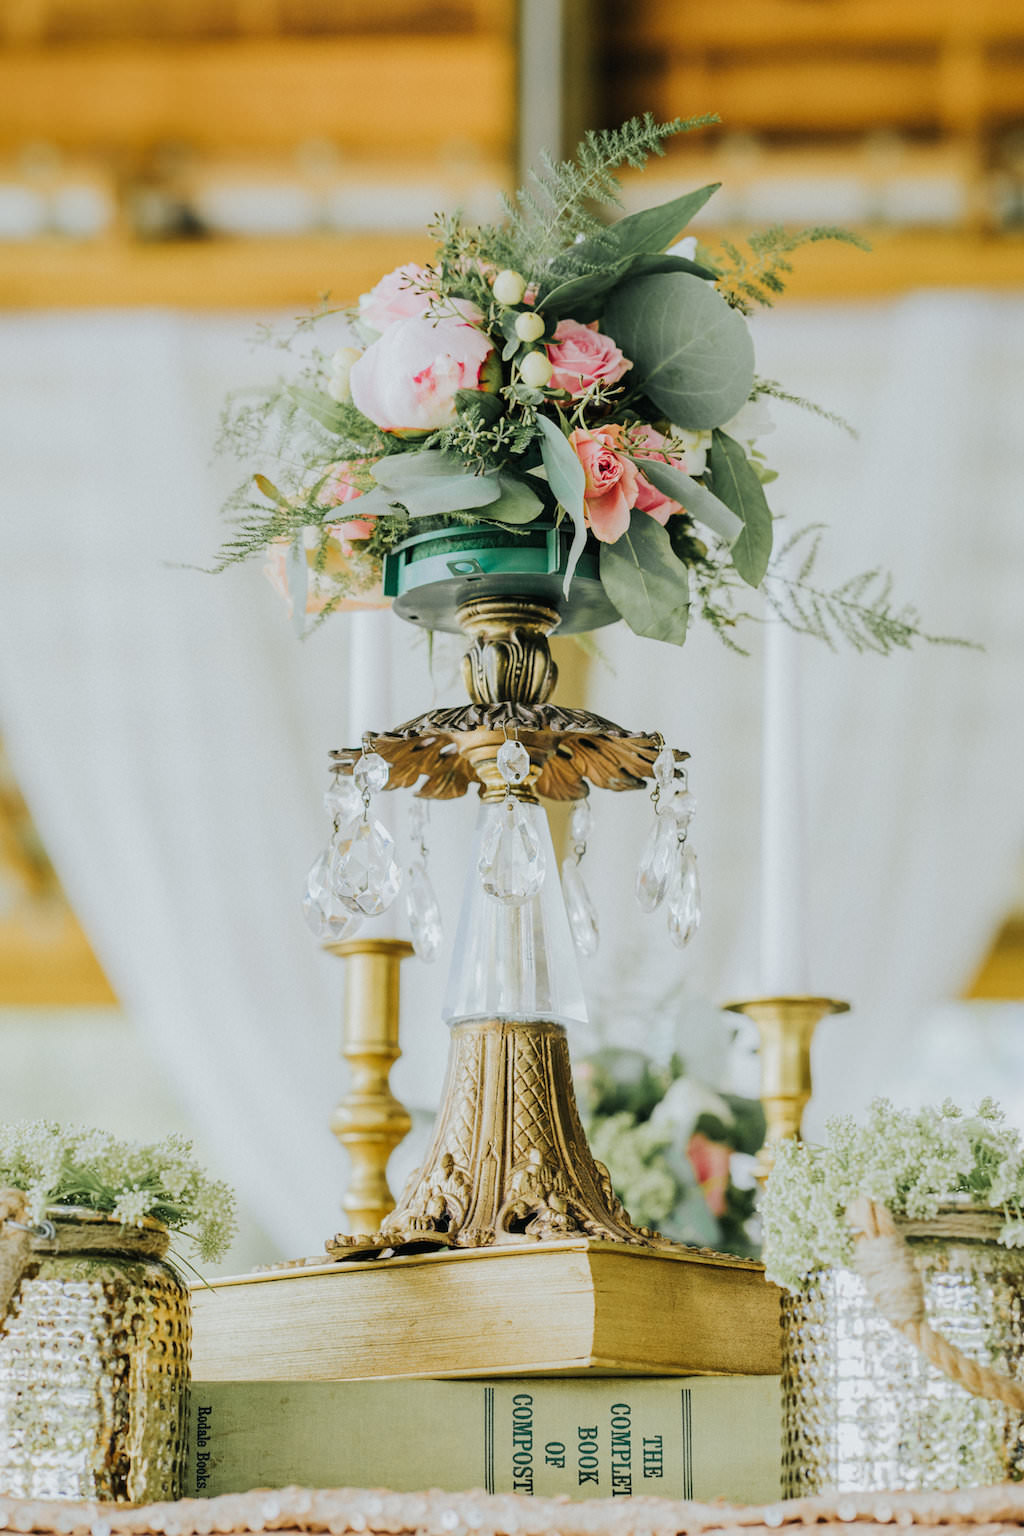 Pleasing Elegant Rustic Wedding Reception Decor With Crystal And Download Free Architecture Designs Scobabritishbridgeorg